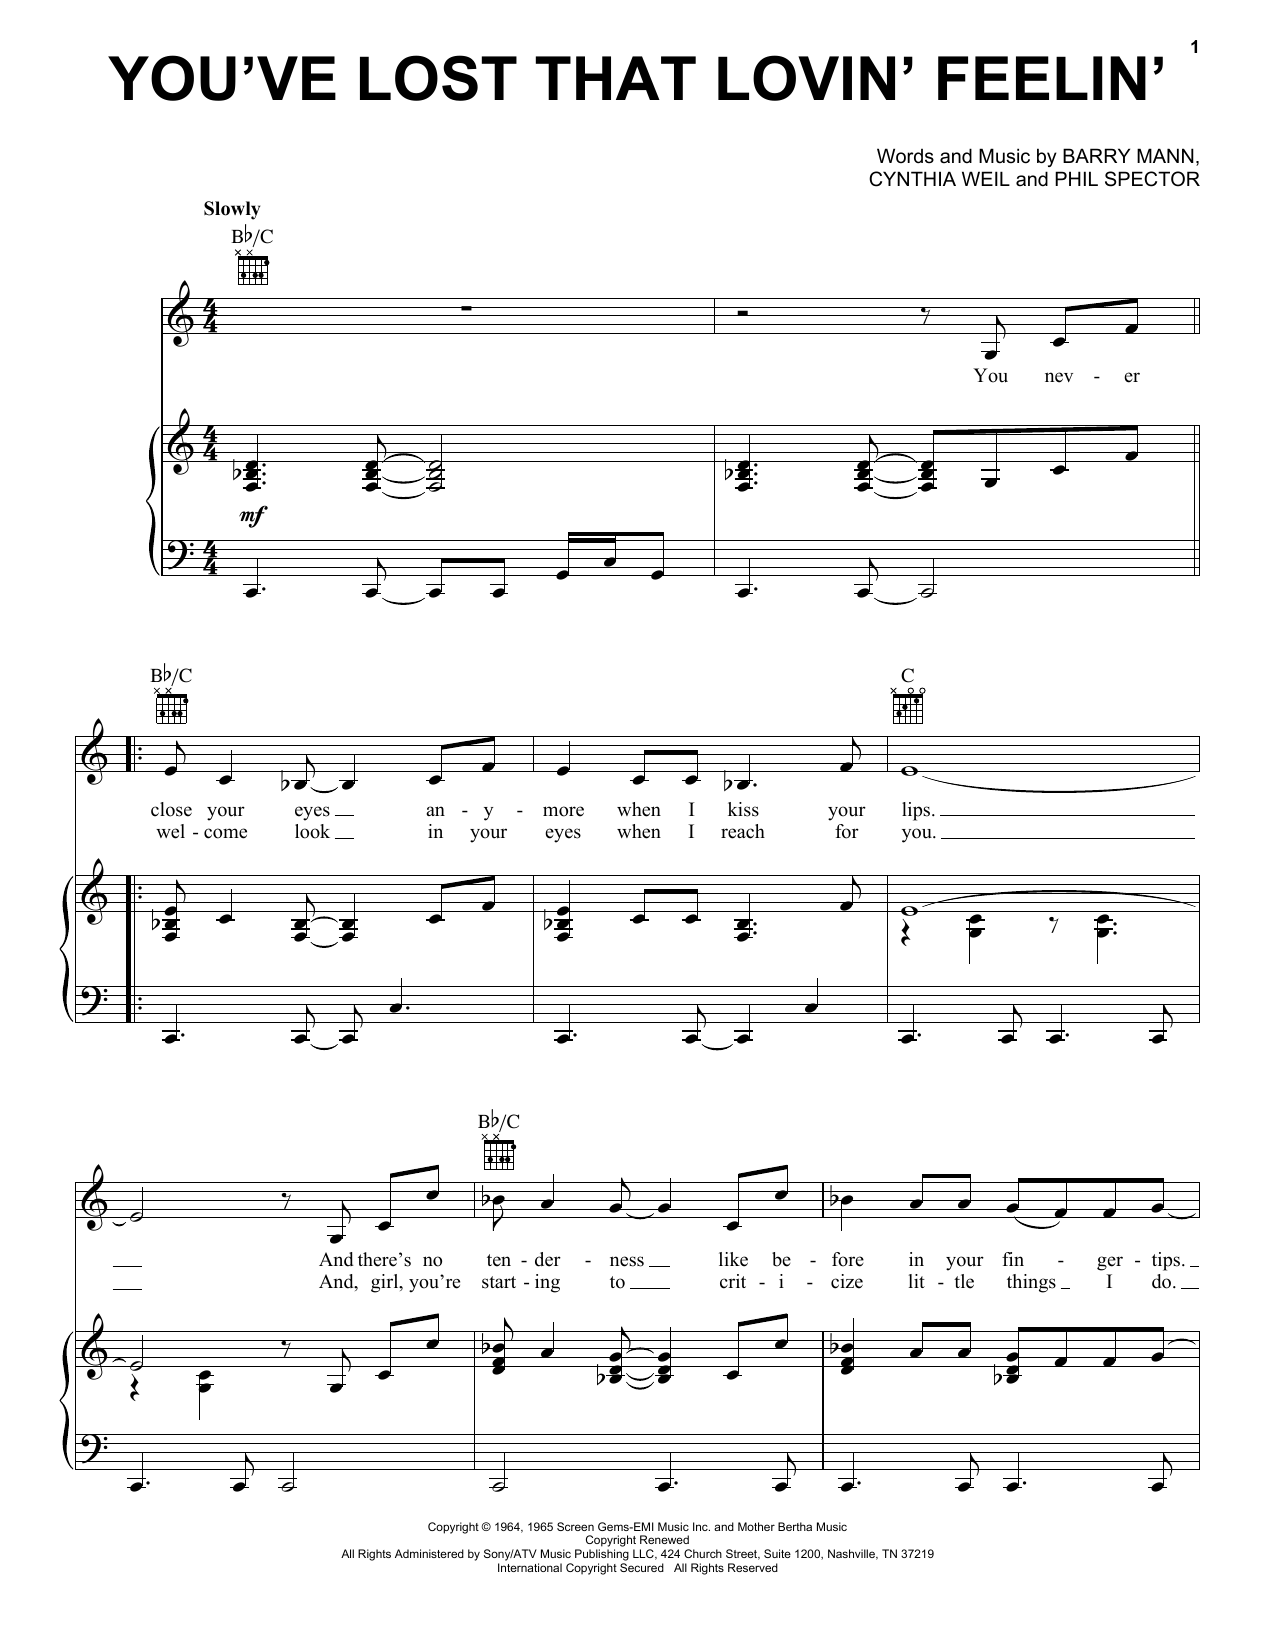 Elvis Presley You've Lost That Lovin' Feelin' sheet music notes and chords. Download Printable PDF.